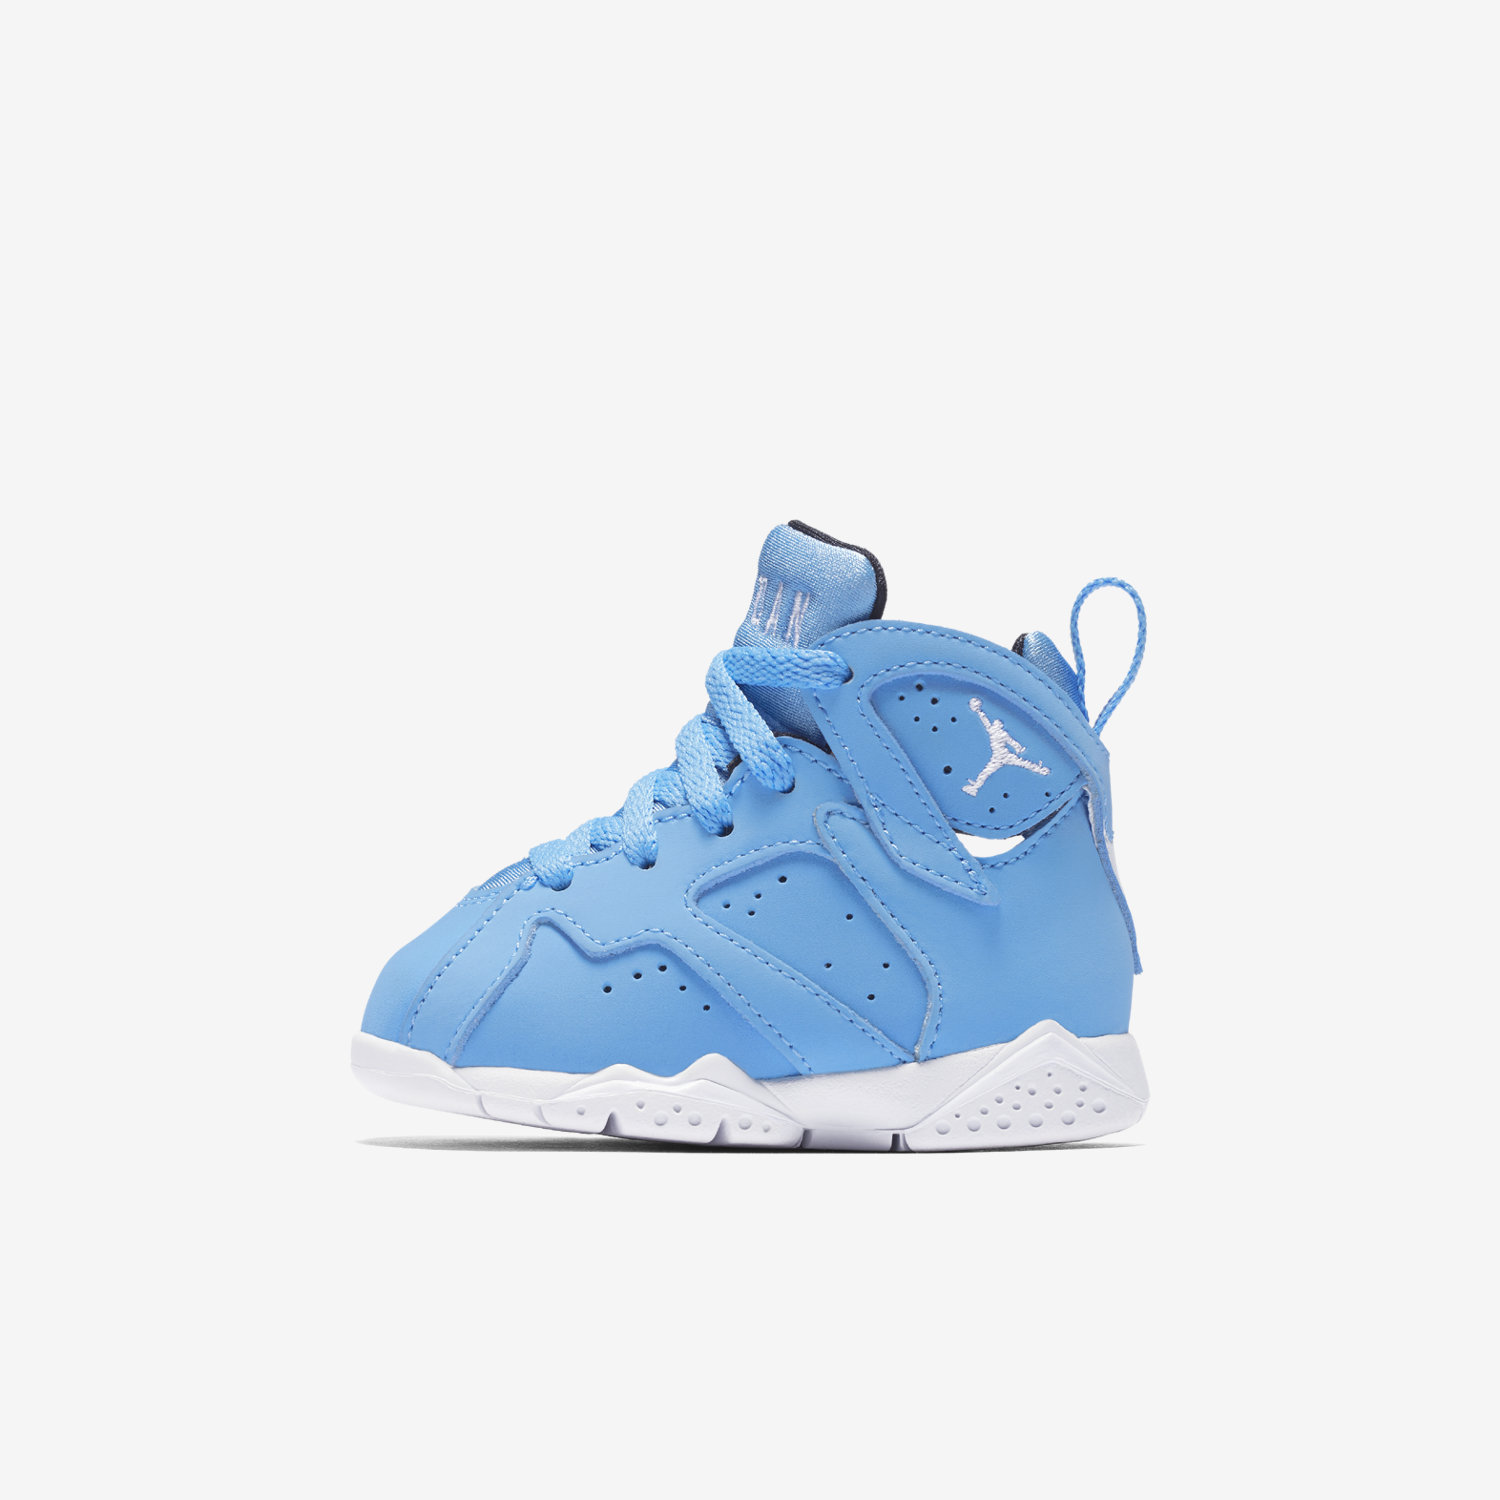 baa0e4aa8a2a65 ... Air Jordan 7 Retro Infant Toddler Shoe.